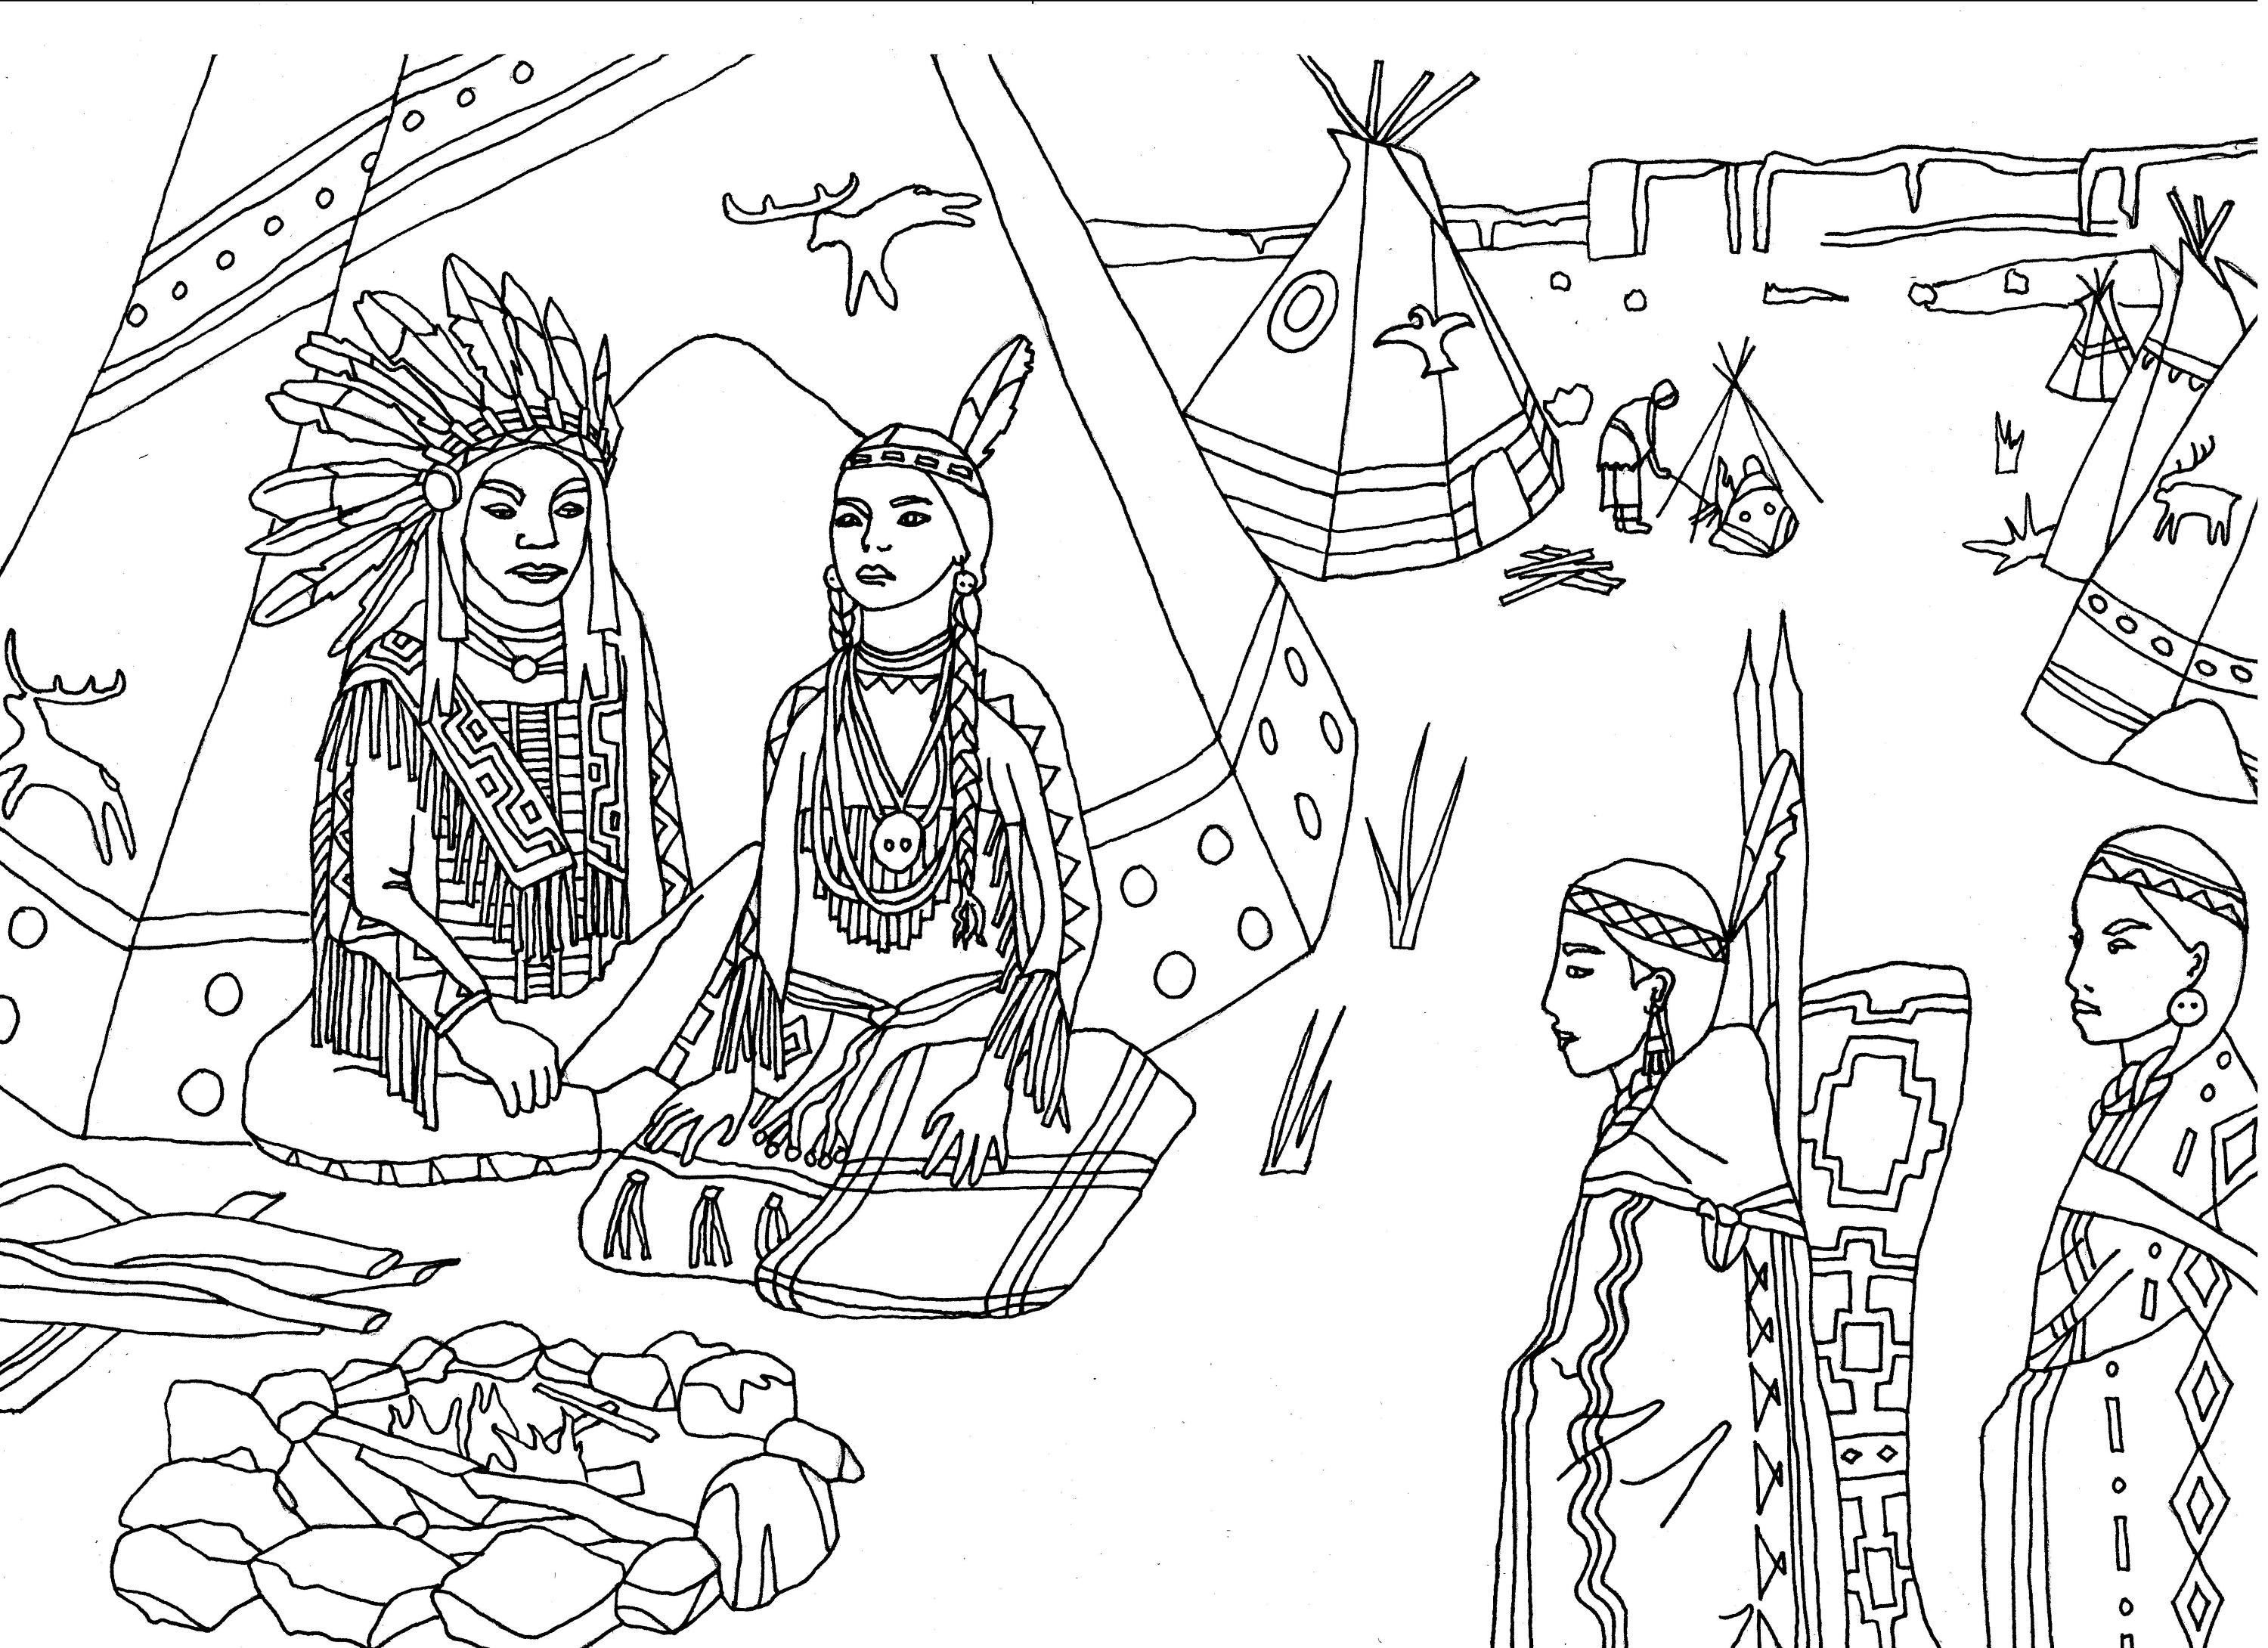 Native americans indians sat front of tipi by marion c | Native ...